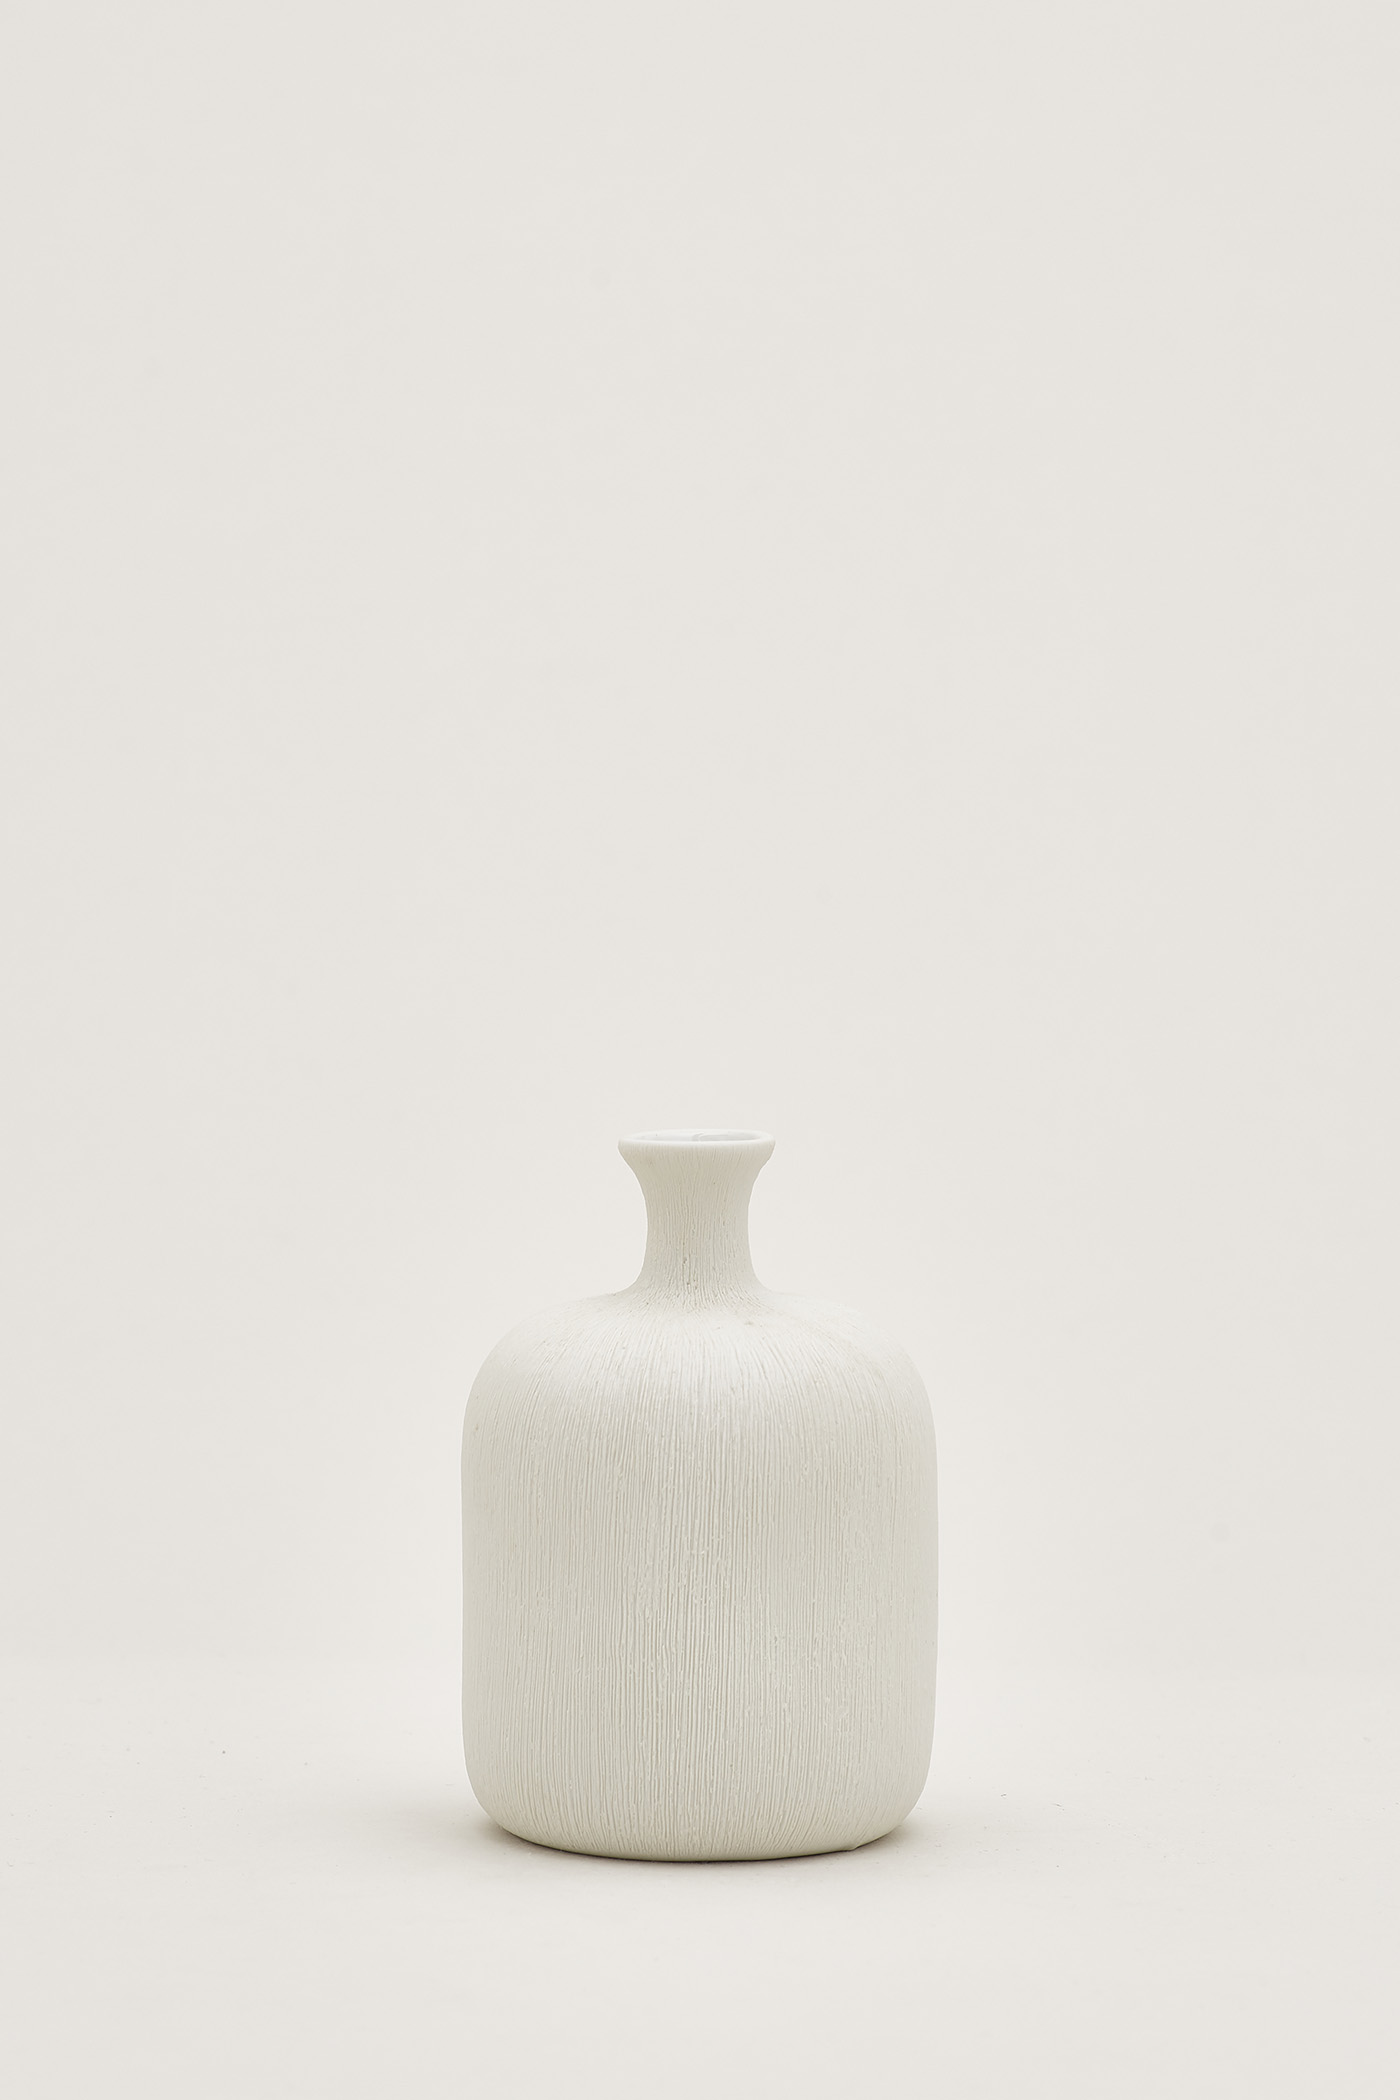 Tana Hairline-Etched Ceramic Vase